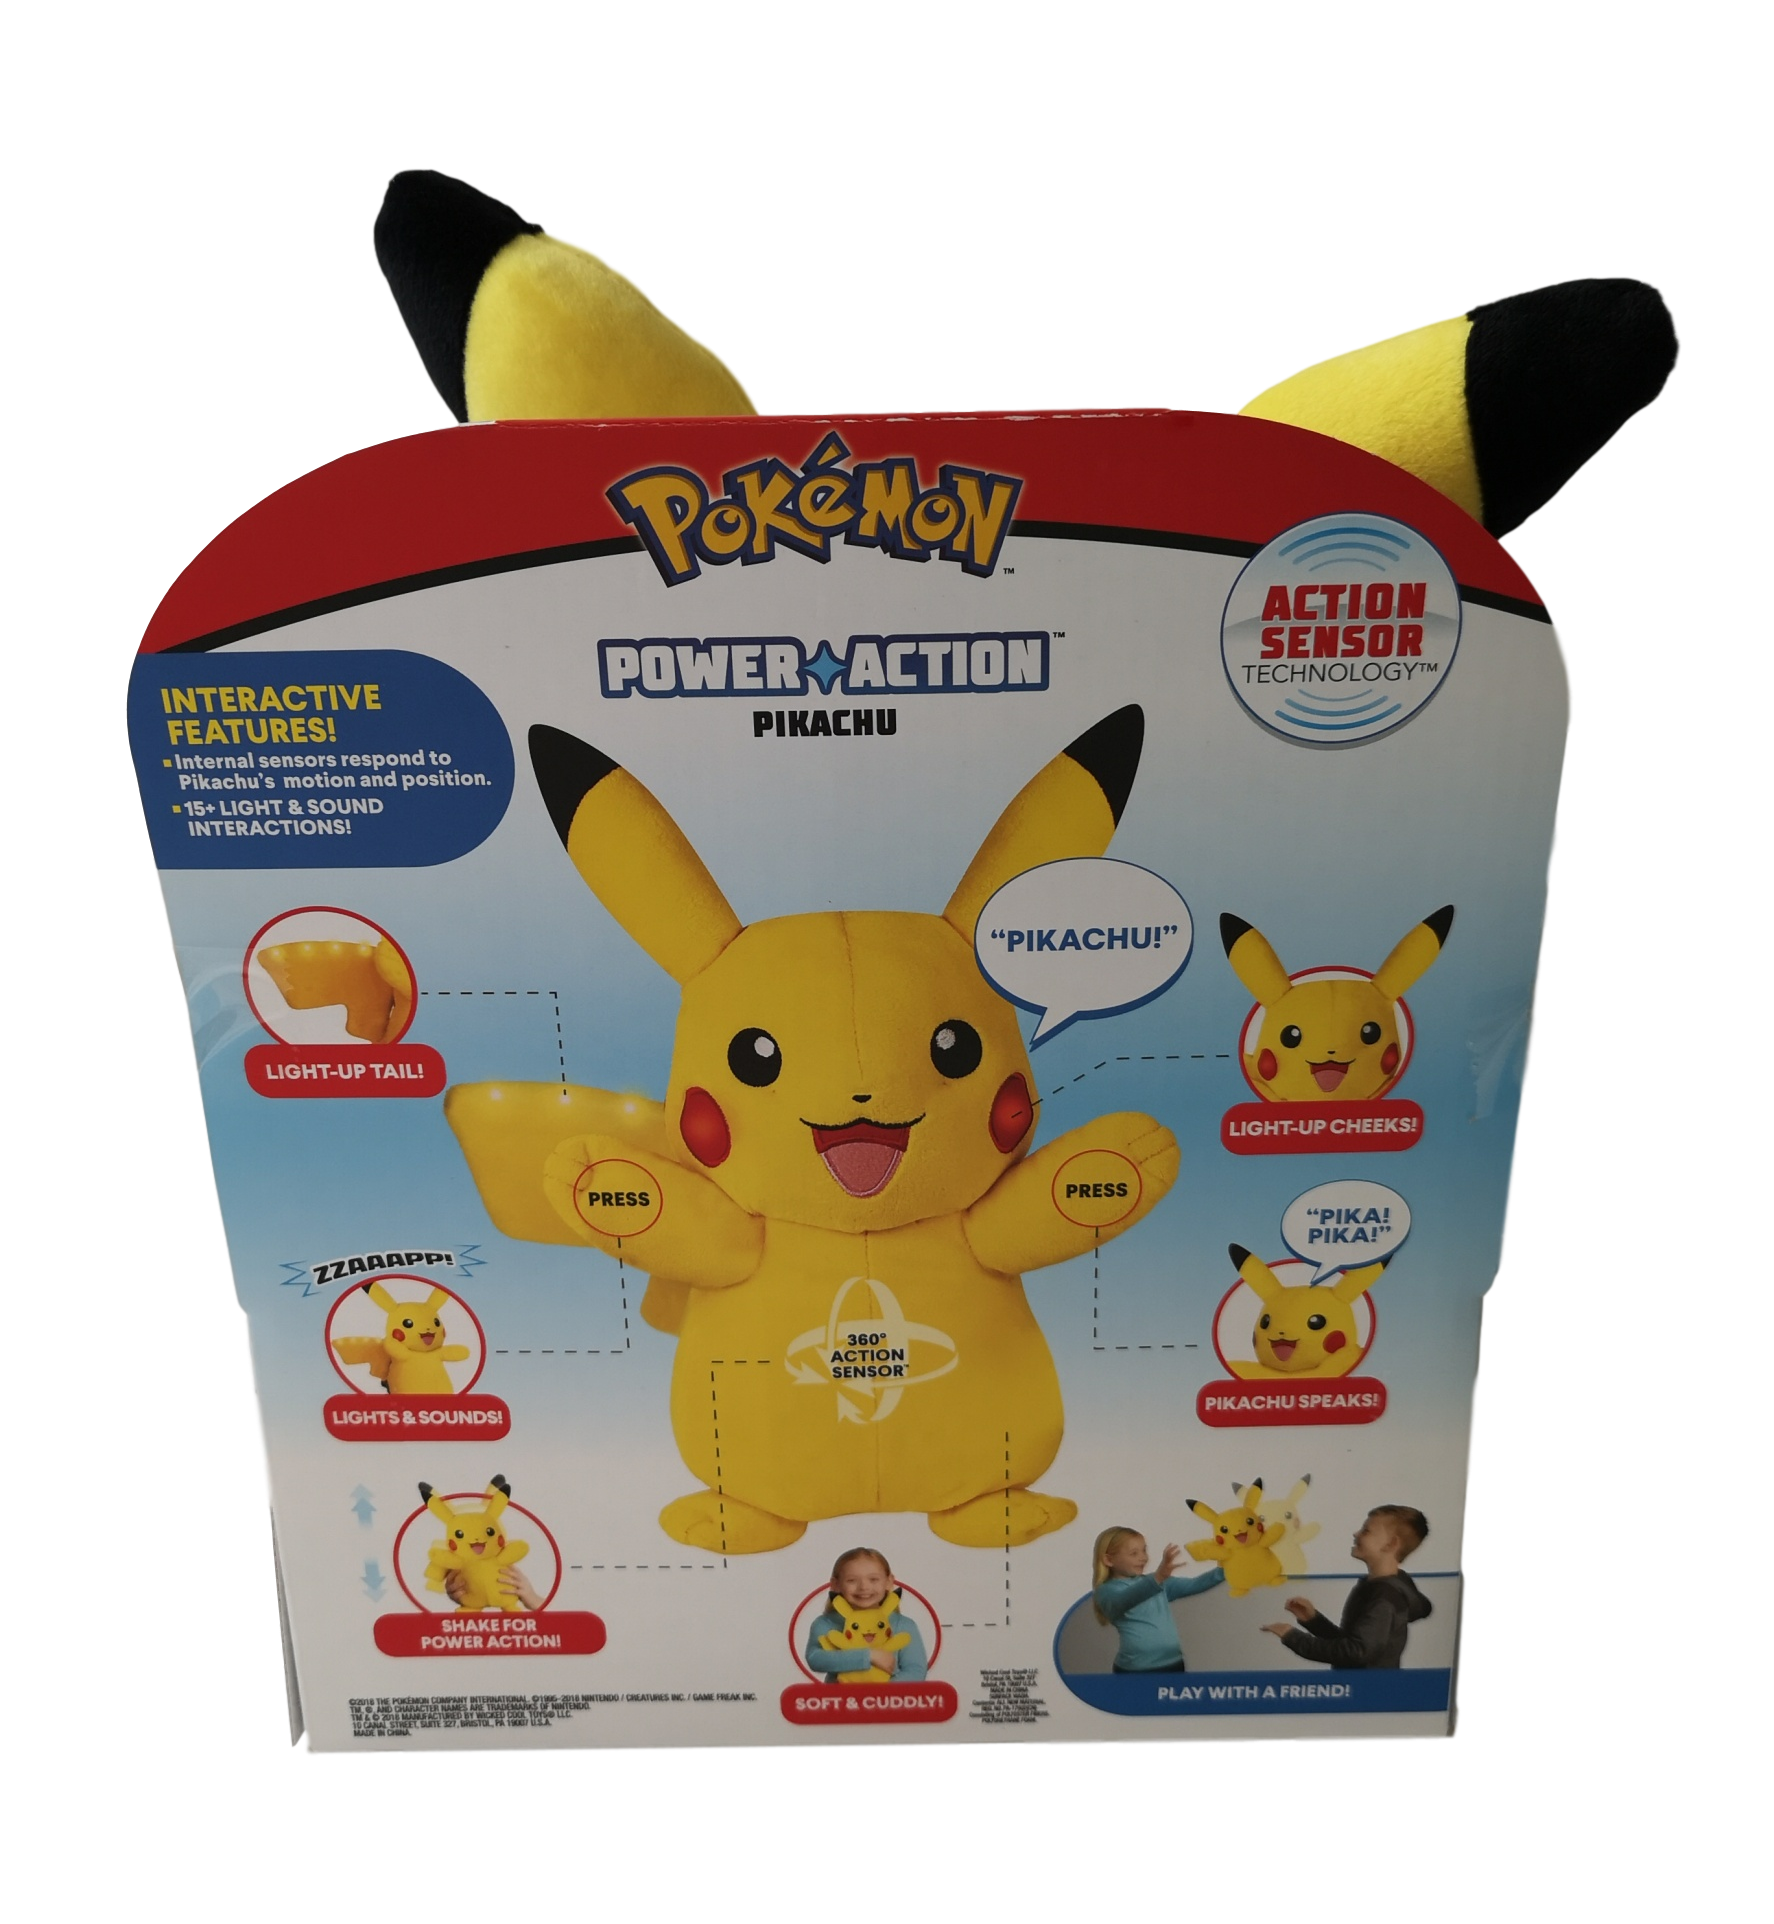 a43f5c31c7a16 Pokemon Power Action Pikachu with Action Sensor technology Other Toys &  Games